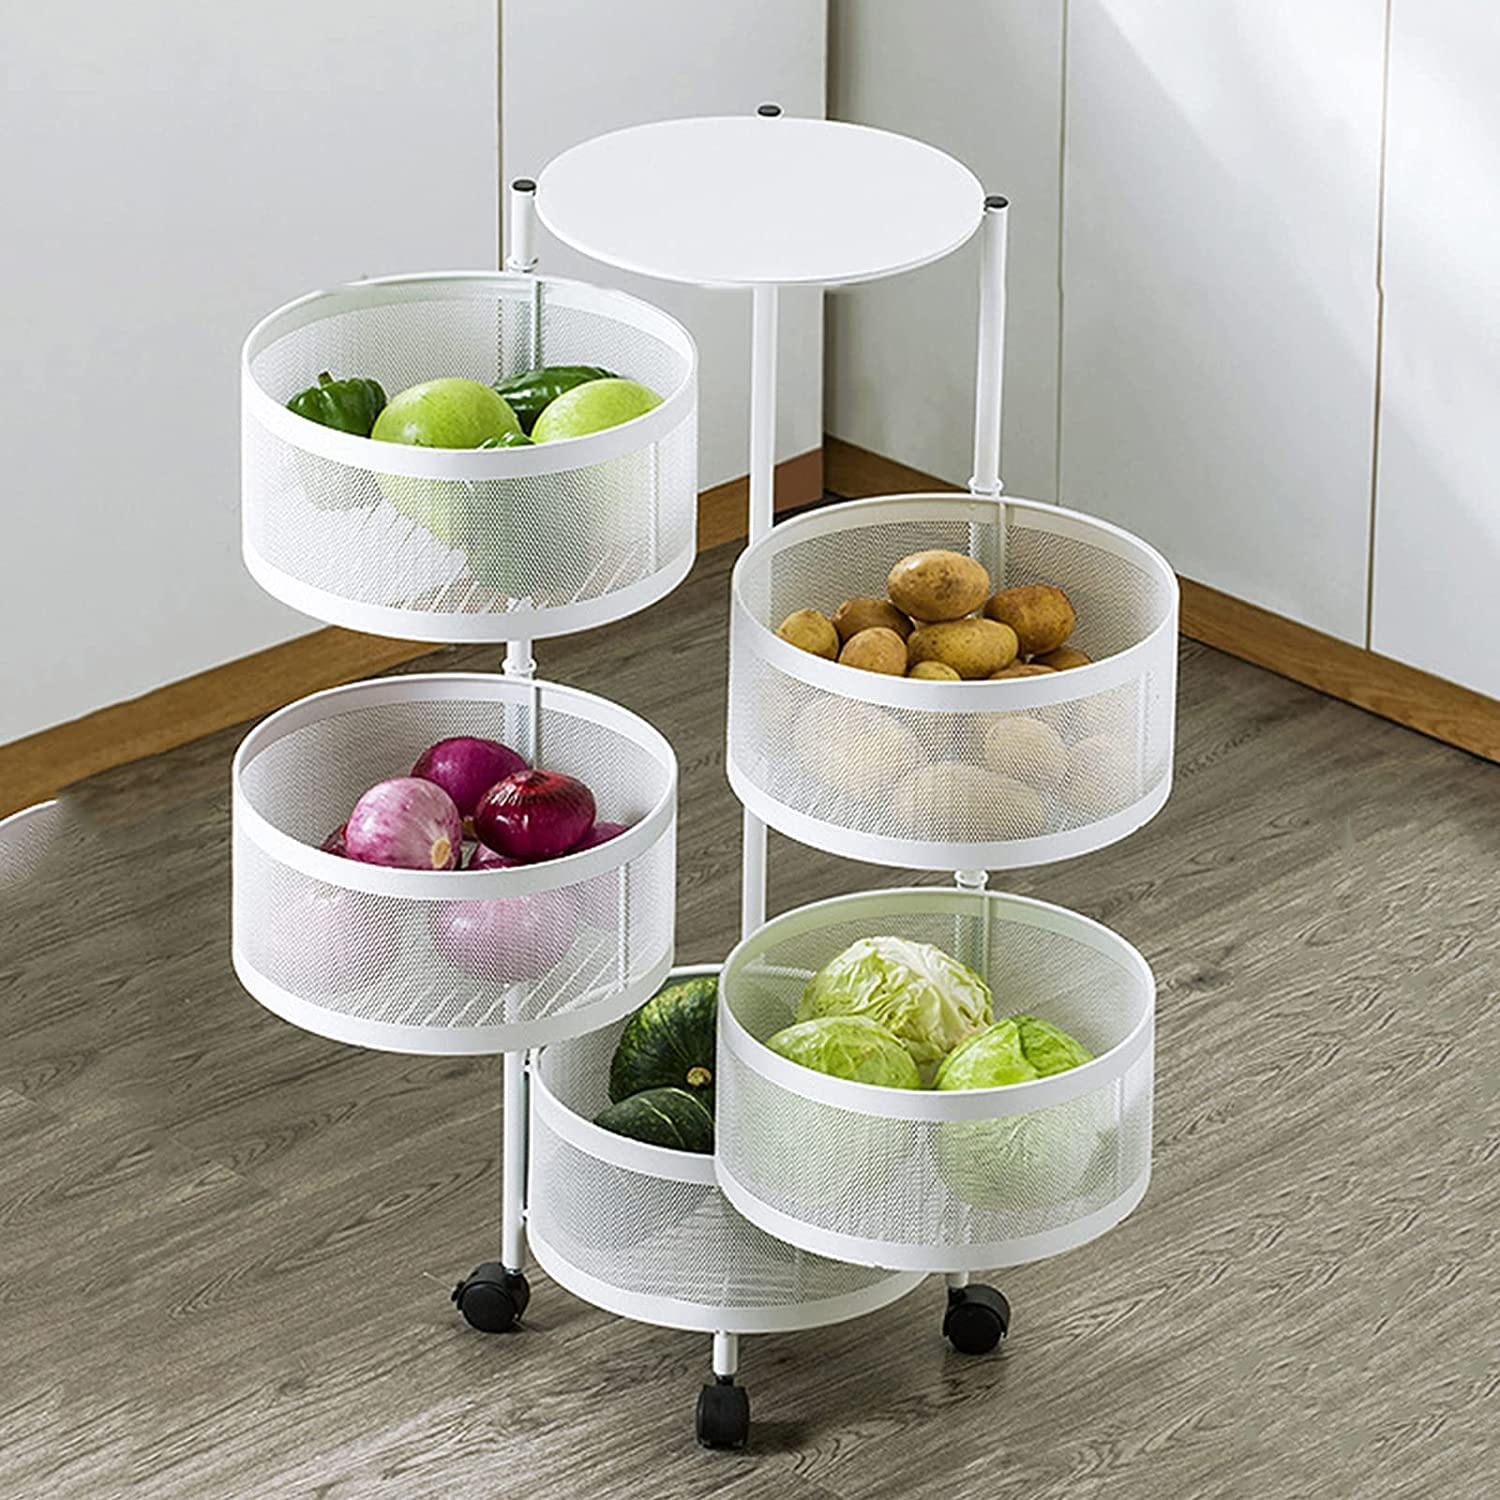 Max 60% OFF Max 71% OFF YDYBY Kitchen Storage Rack F Movable Vegetable 360°Rotating